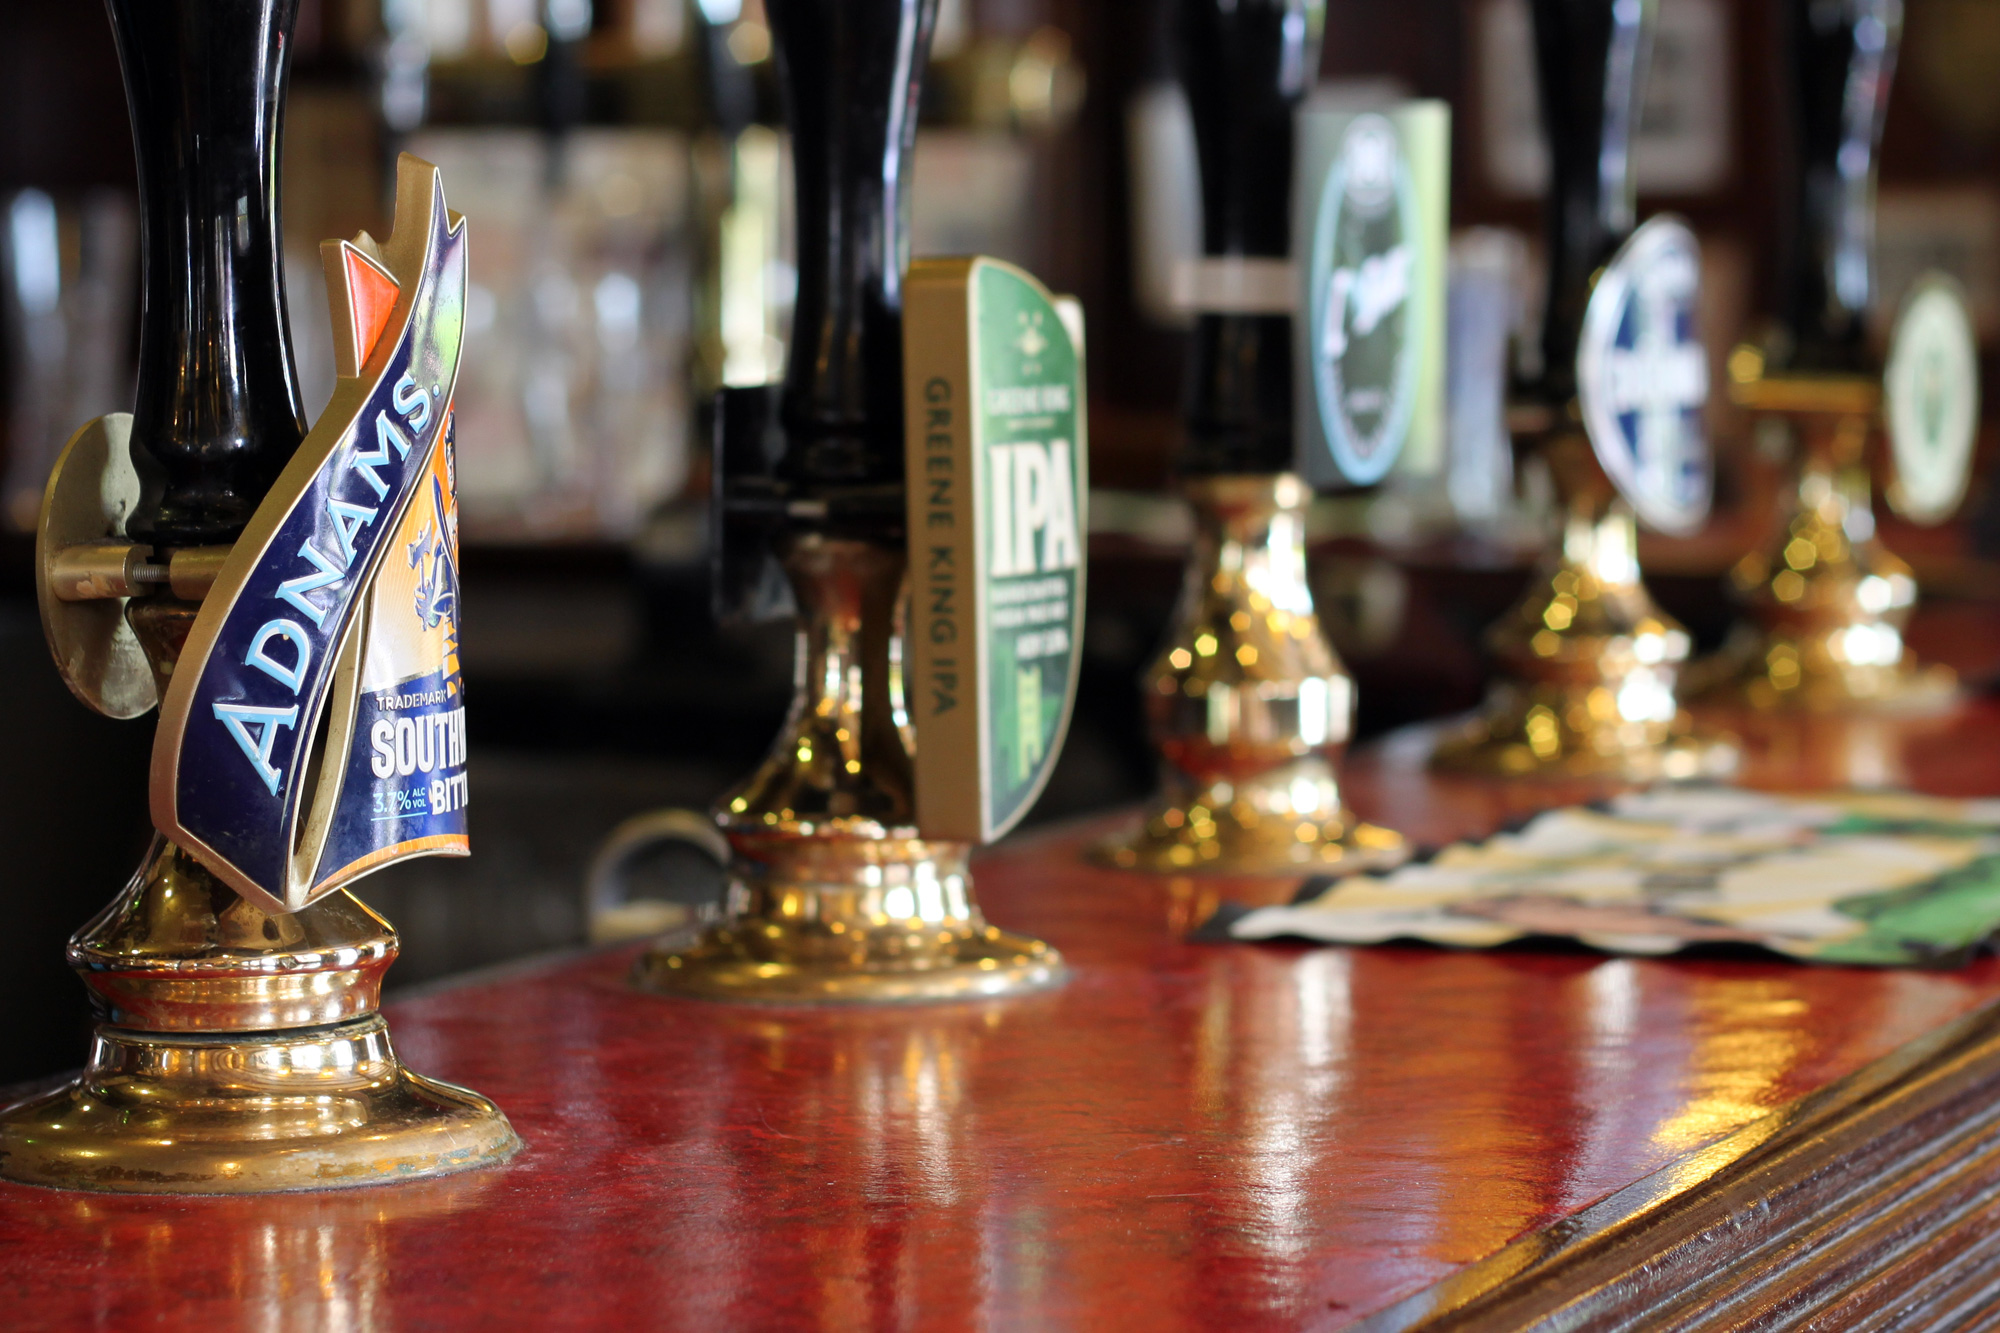 Cask Ales, Bottled Beers, Lagers